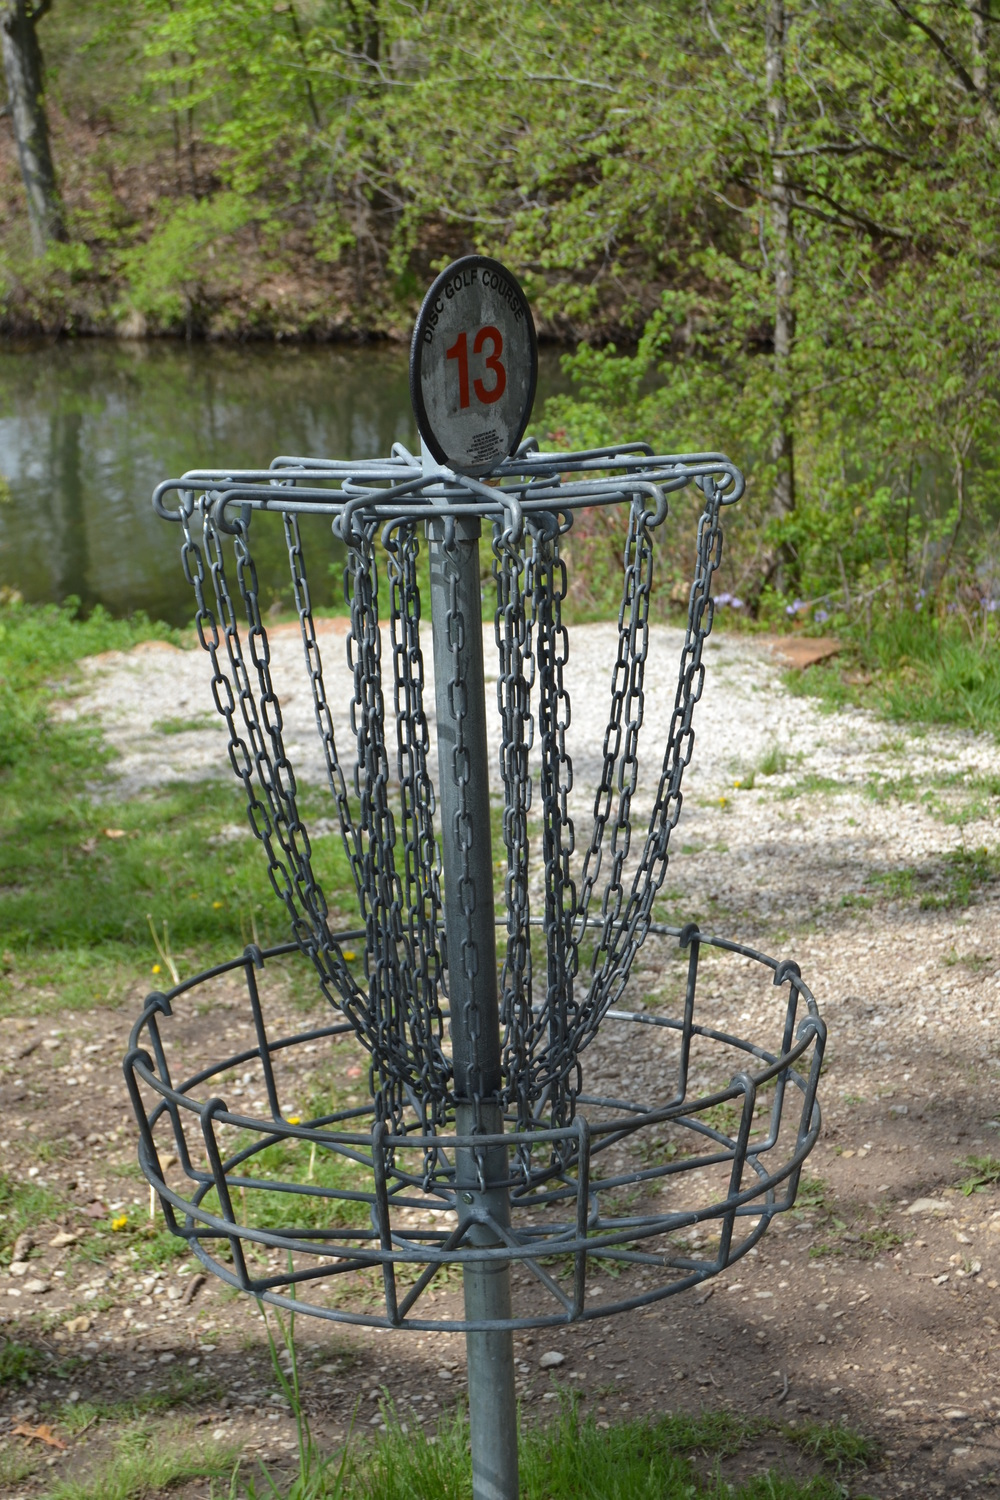 Disc Golf Anyone?